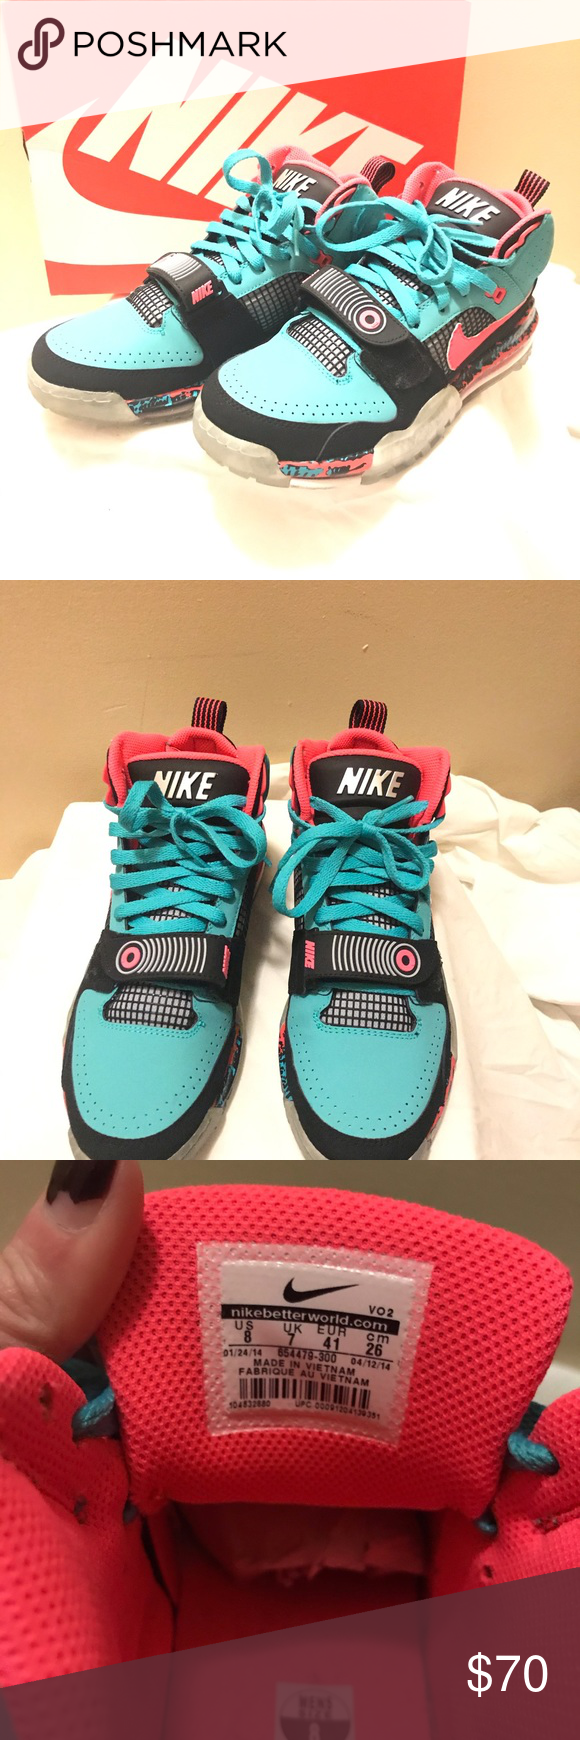 Nike Bo Jackson South Beach Great MIAMI colors and hard to find Nike Shoes Sneak…